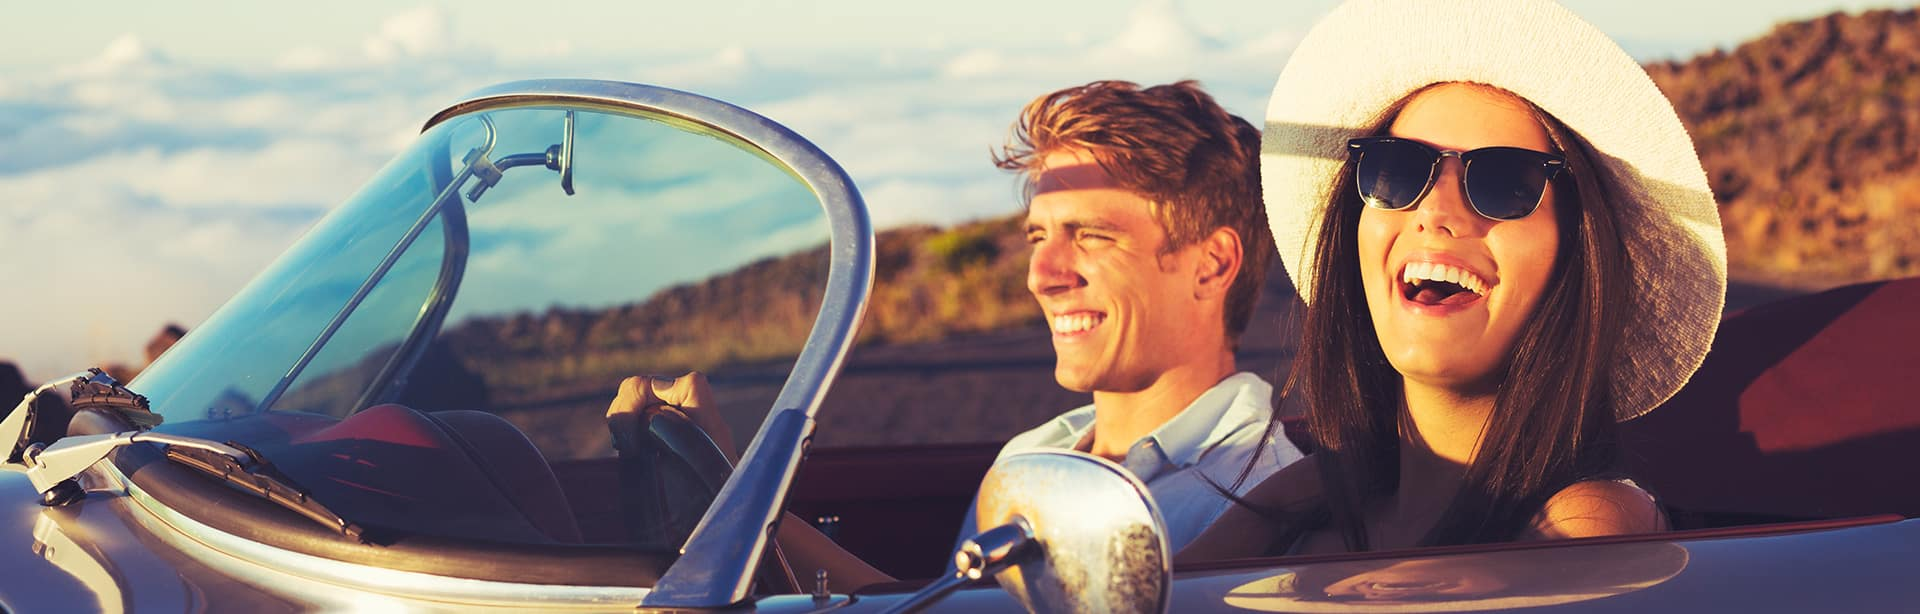 Summer Driving Tips for Road Trips and Daily Driving